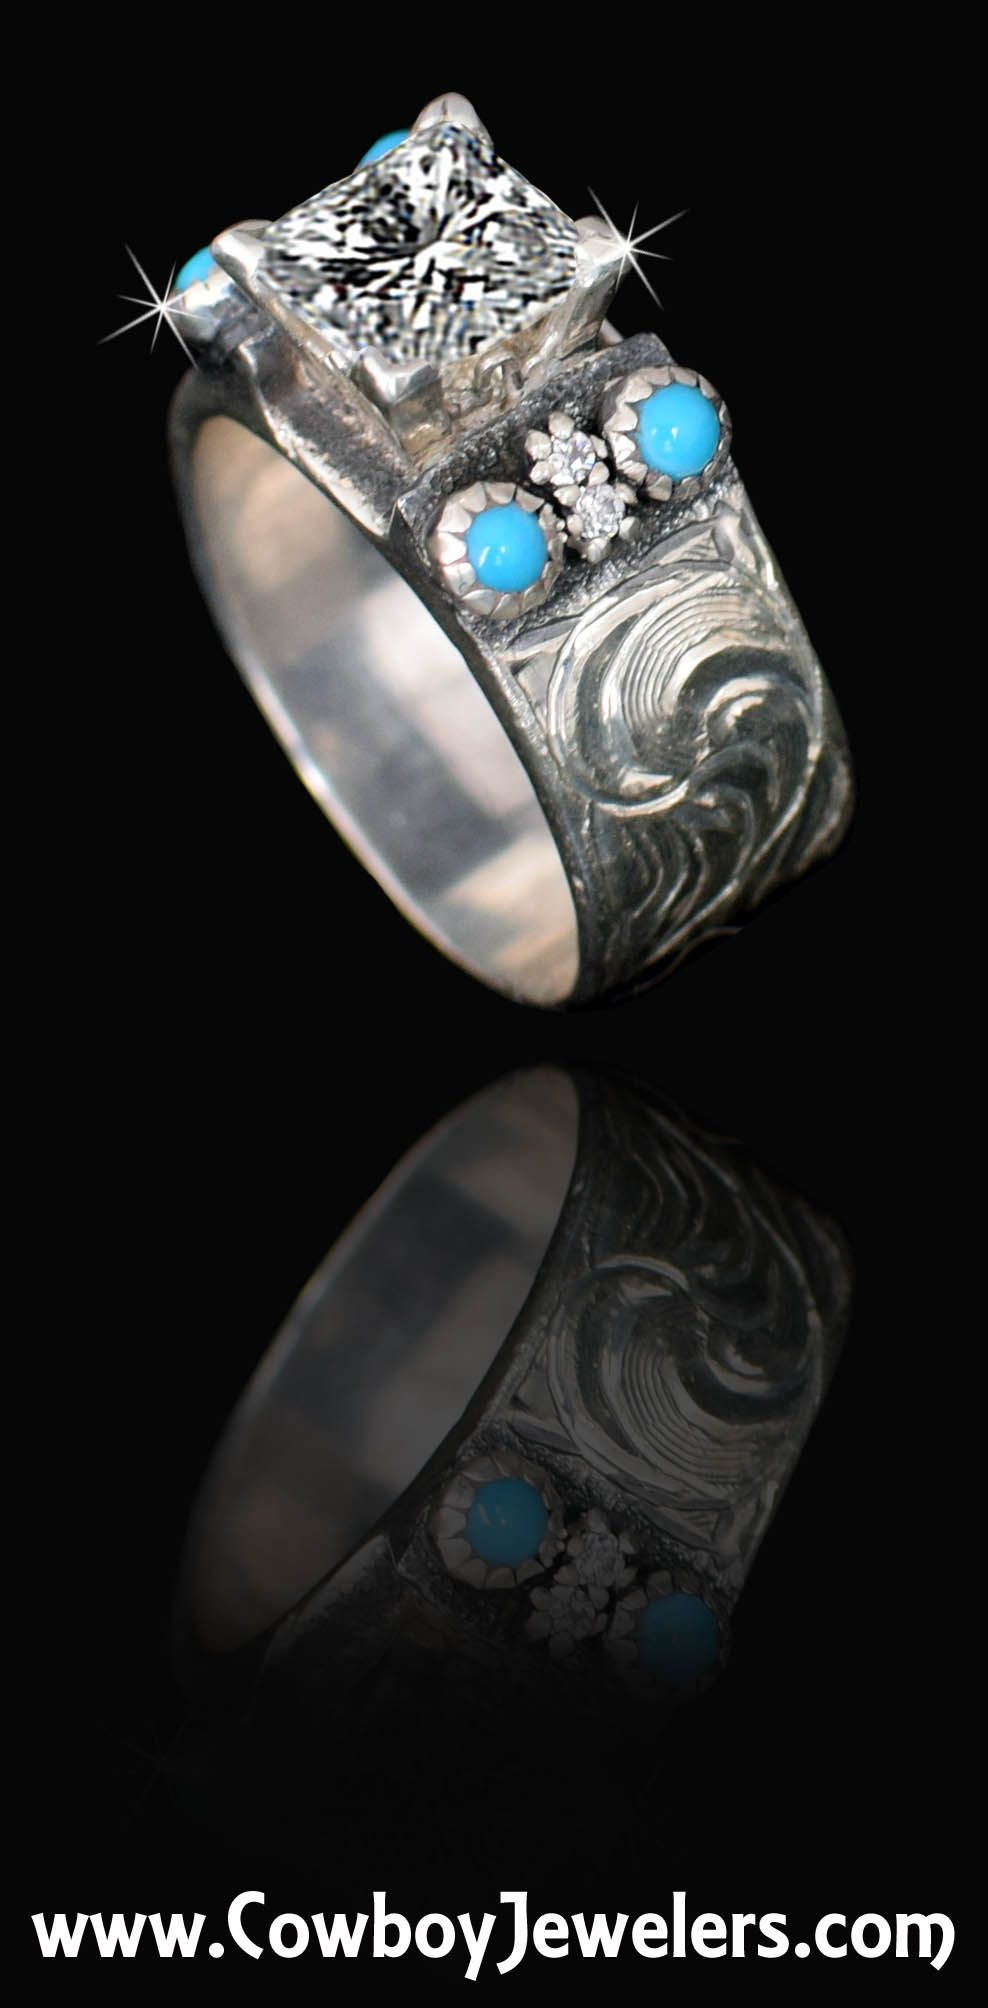 5130 Custom Made 10mm Wide Band And Sold Online By Cowboyjewelers Shown